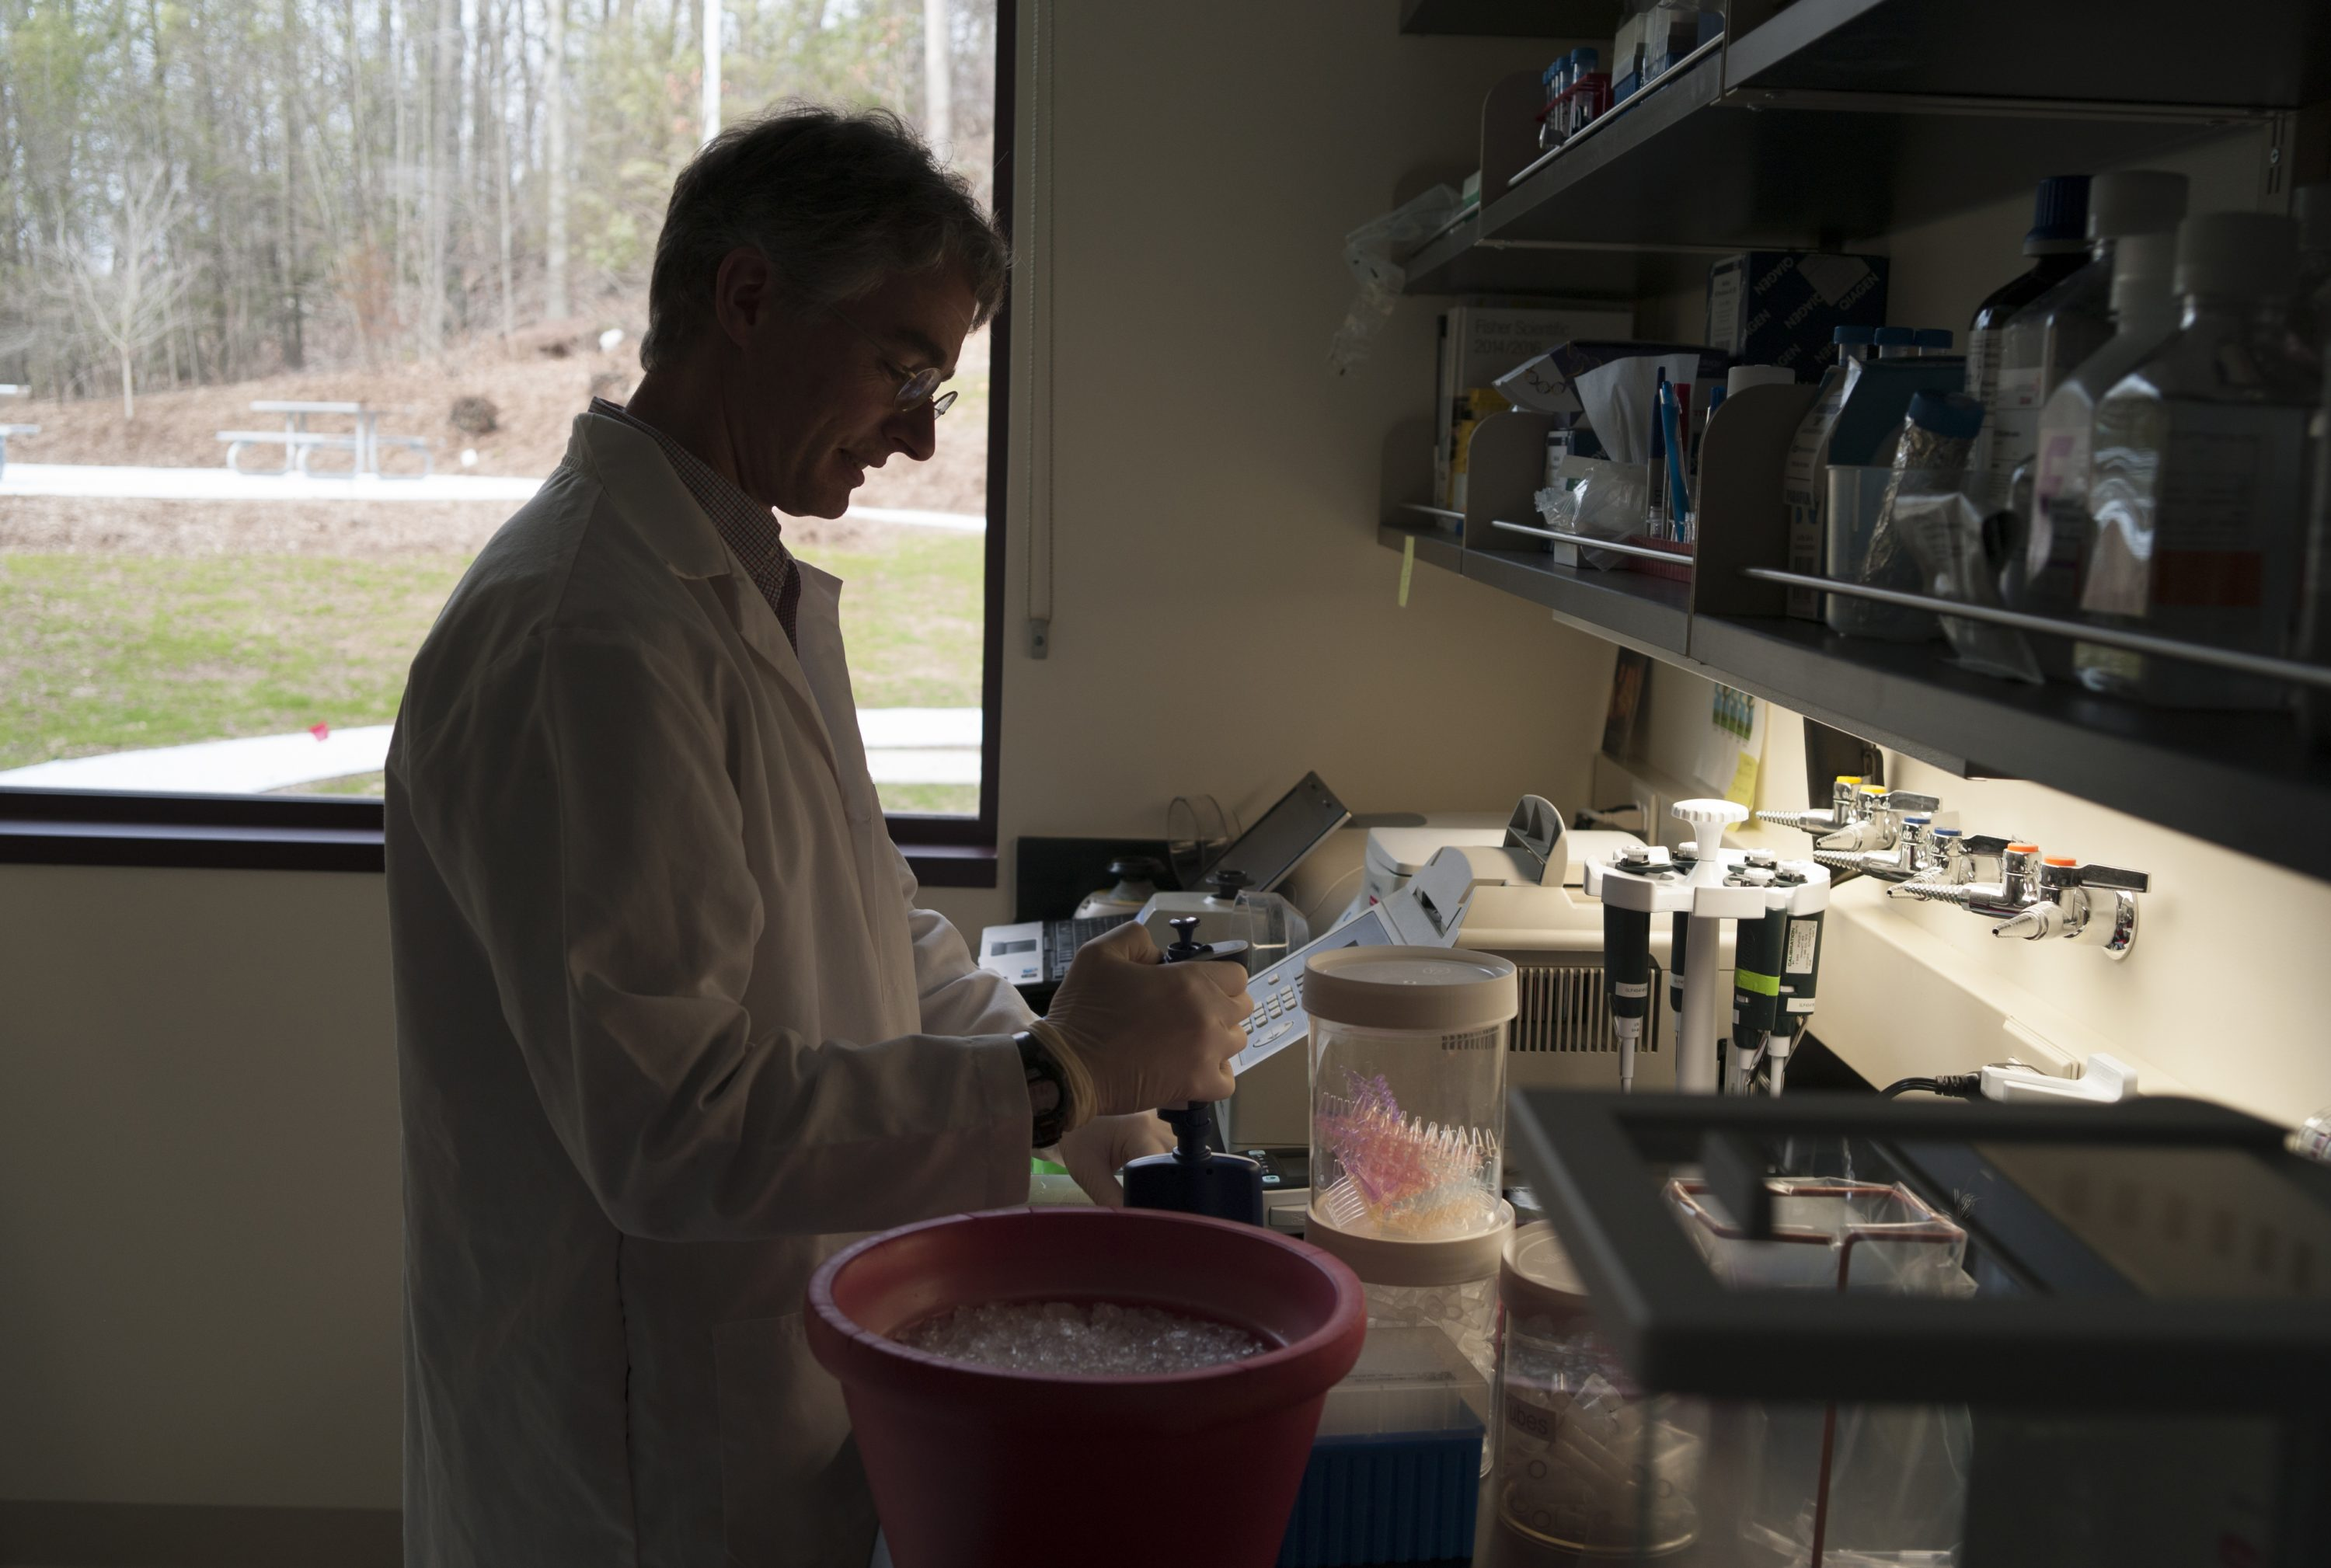 Mark Driscoll, co-founder of Shoreline Biome, at work in a lab at the UConn technology incubator in Farmington on March 31, 2016. (Peter Morenus/UConn Photo)